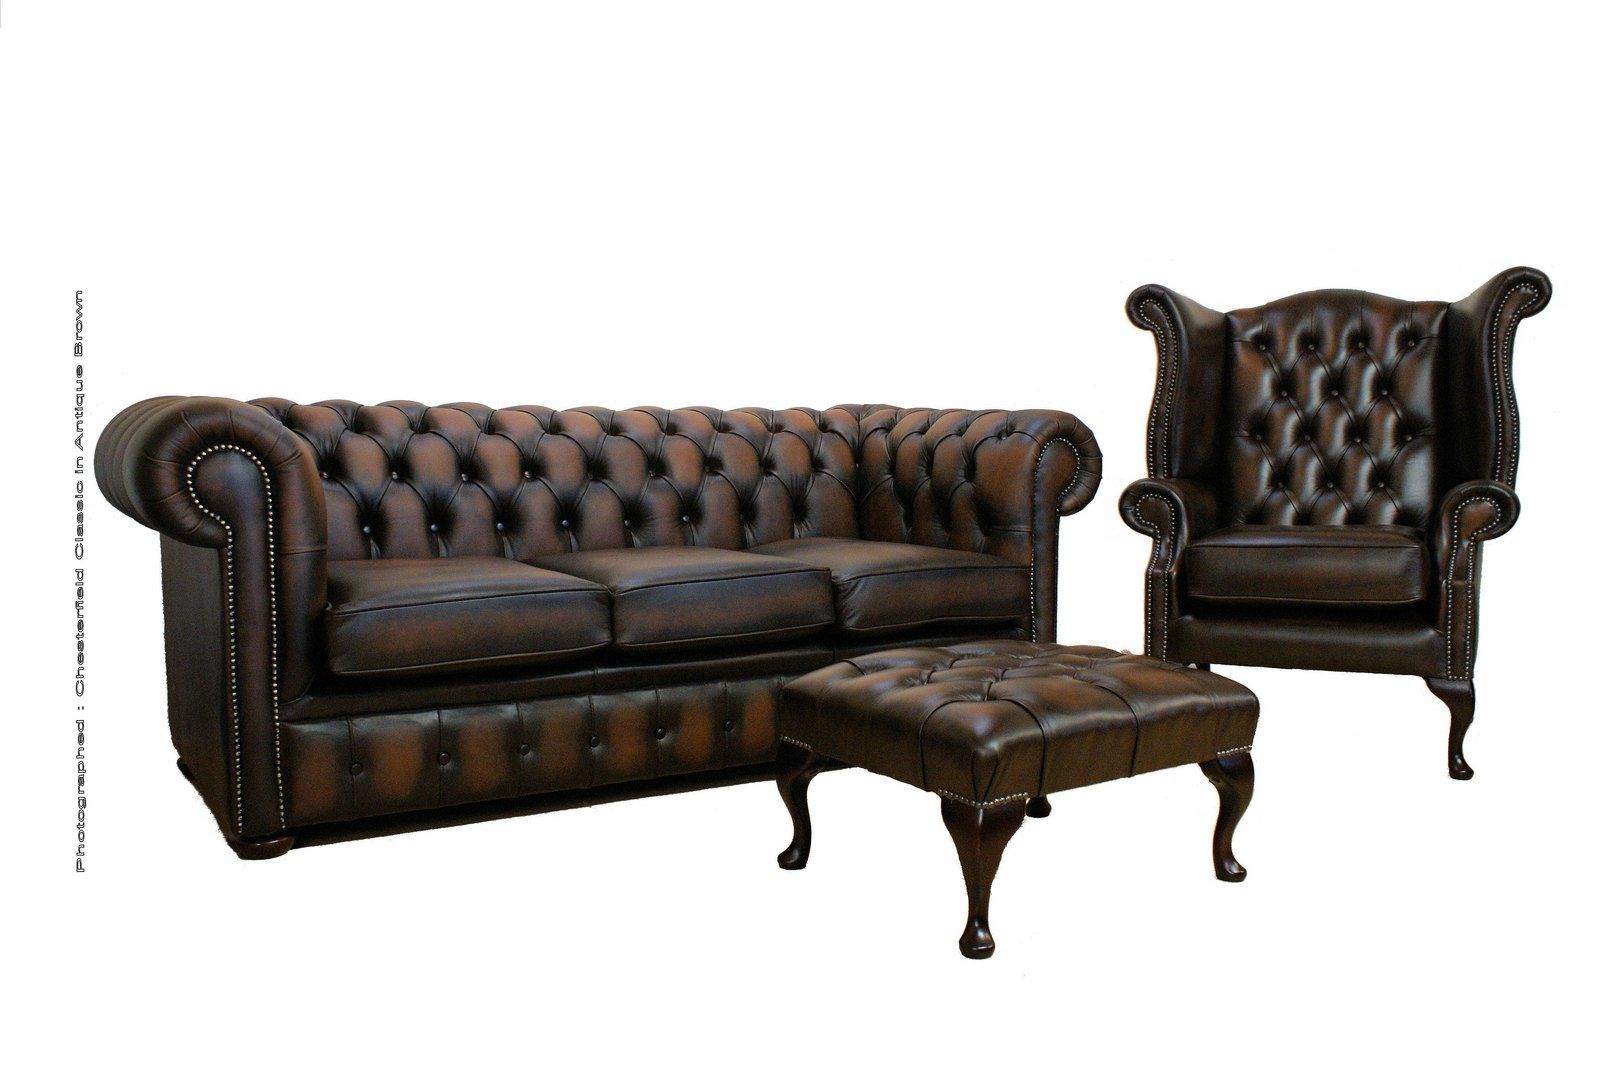 Second Hand Chesterfield Could Do The Job Designer Sofas 4 U Sofa Living Room Furniture Recliner Reclining Sofa